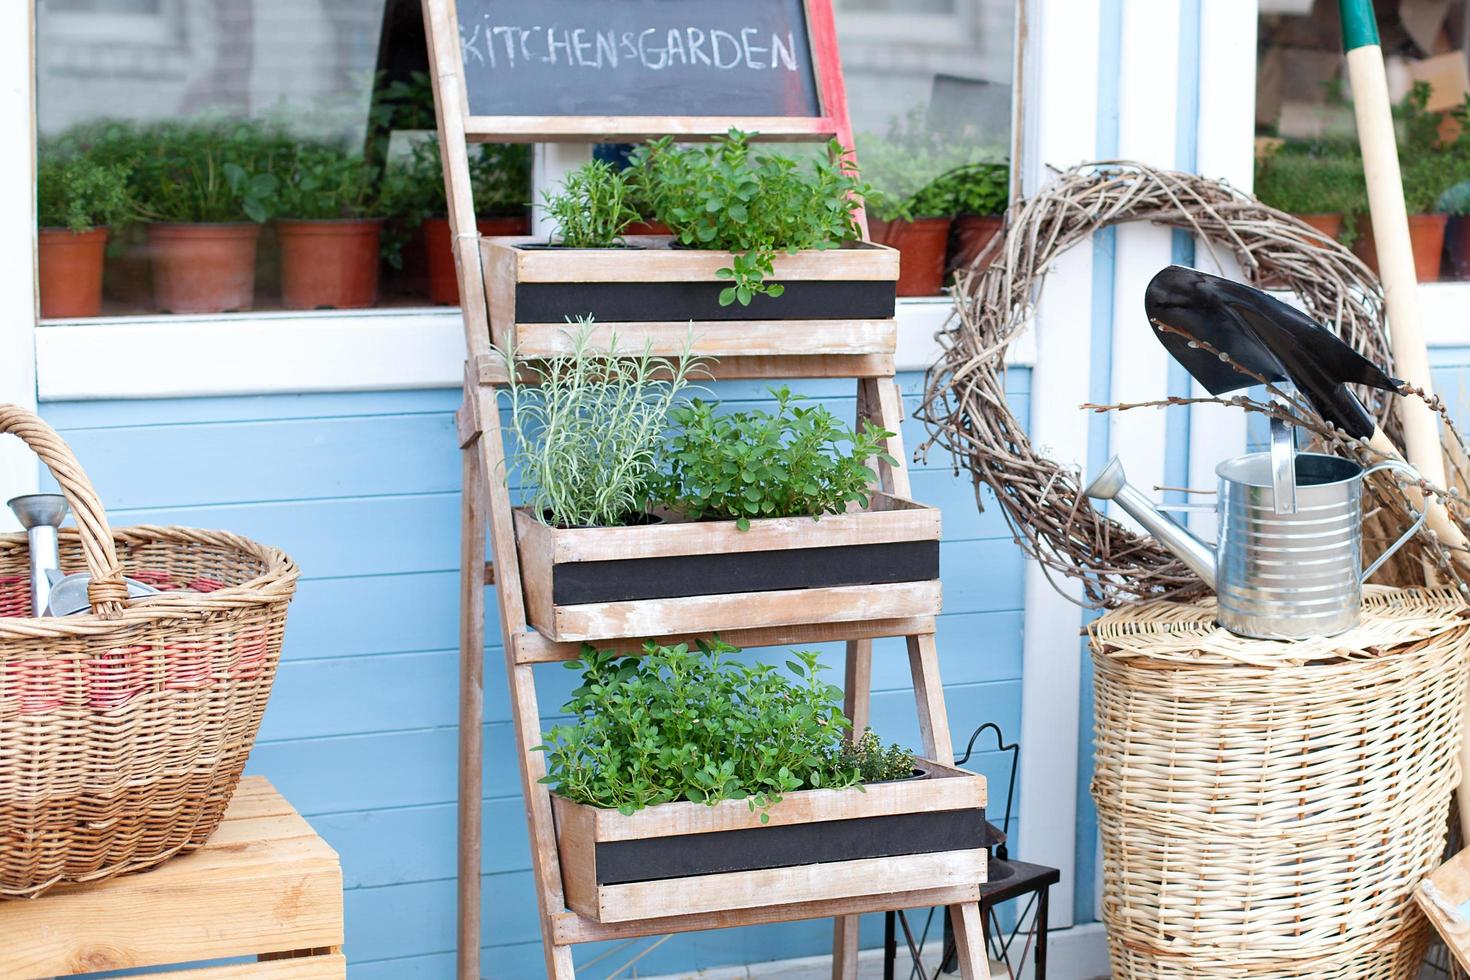 Growing plants in pots on a country house porch photo